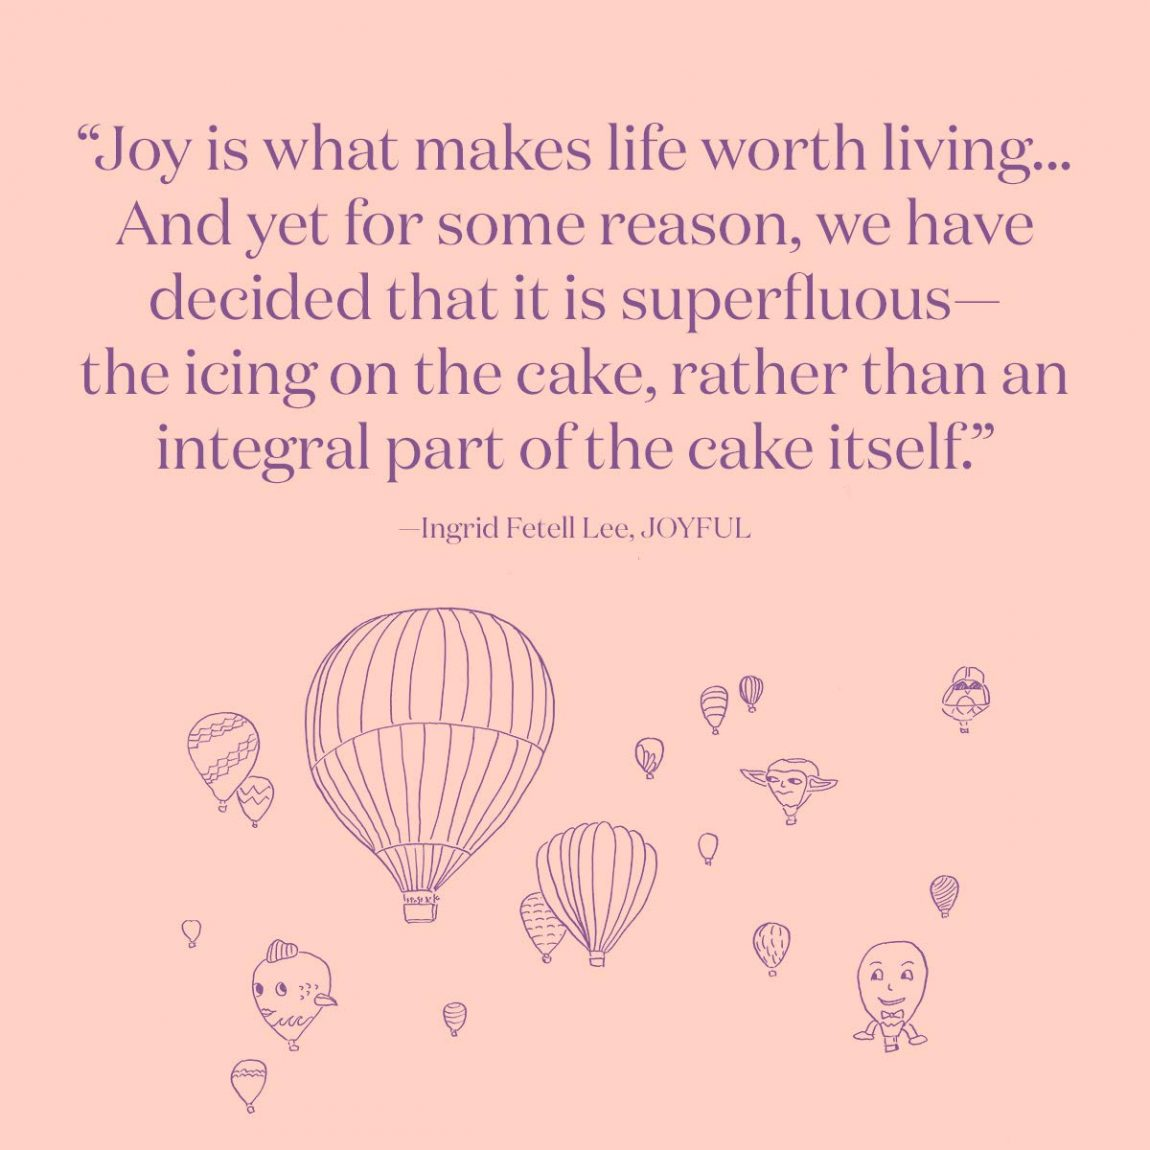 Joy is what makes life worth living... And yet for some reason, we have decided that it is superfluous—the icing on the cake, rather than an integral part of the cake itself.